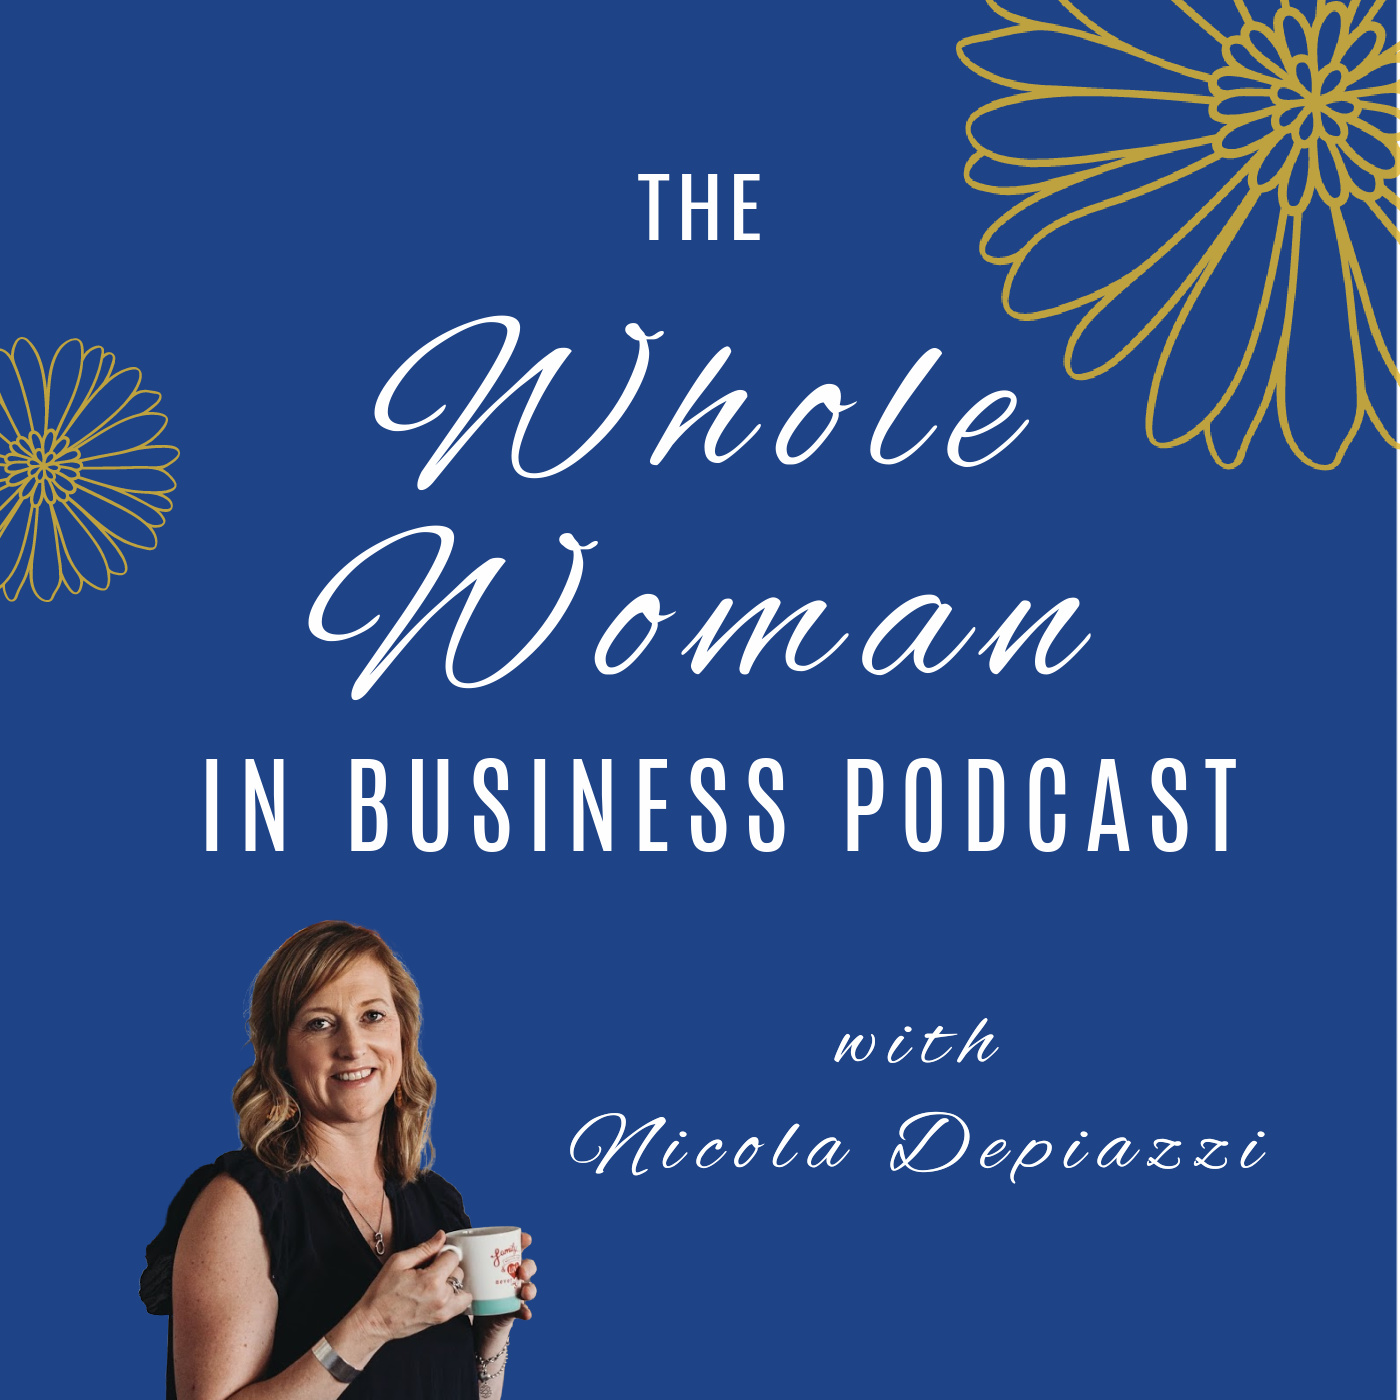 The Whole Woman in Business podcast